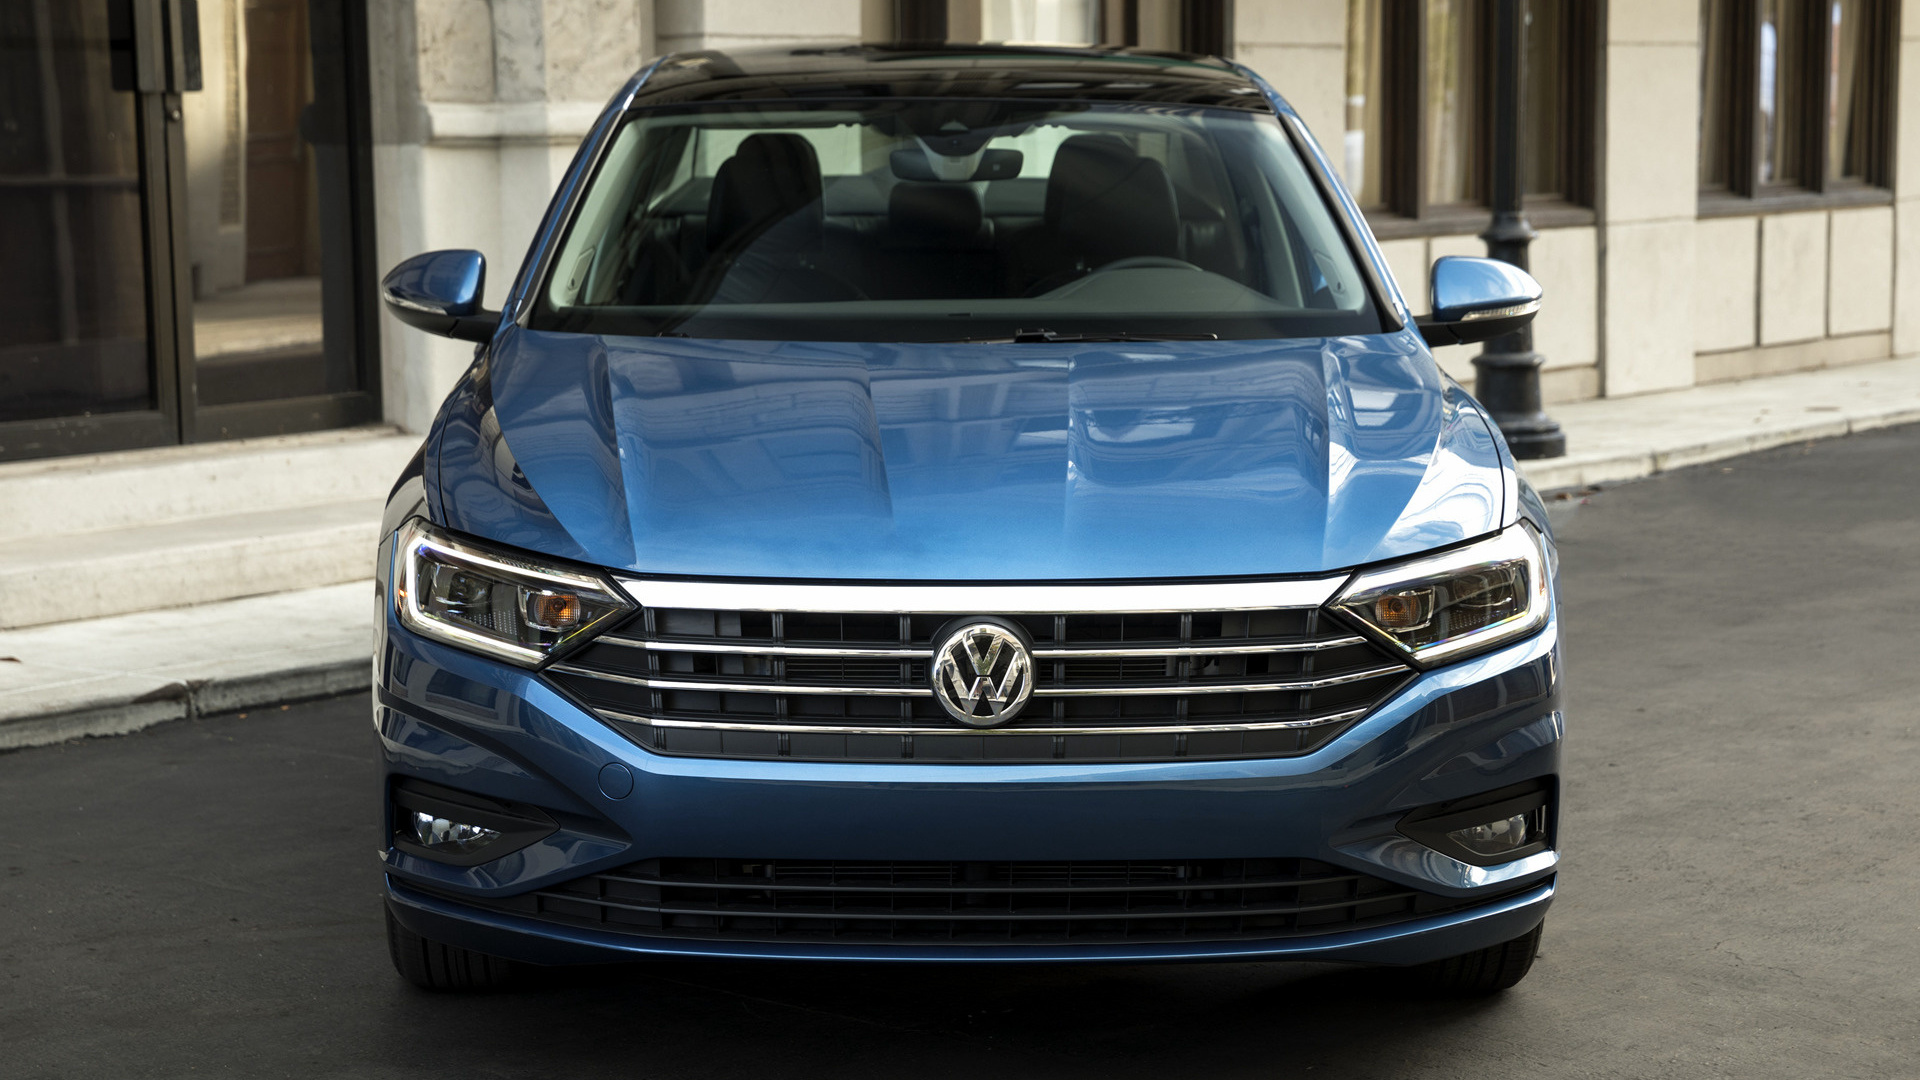 2019 Droped Jetta Wallpapers: 2019 Volkswagen Jetta - Wallpapers And HD Images